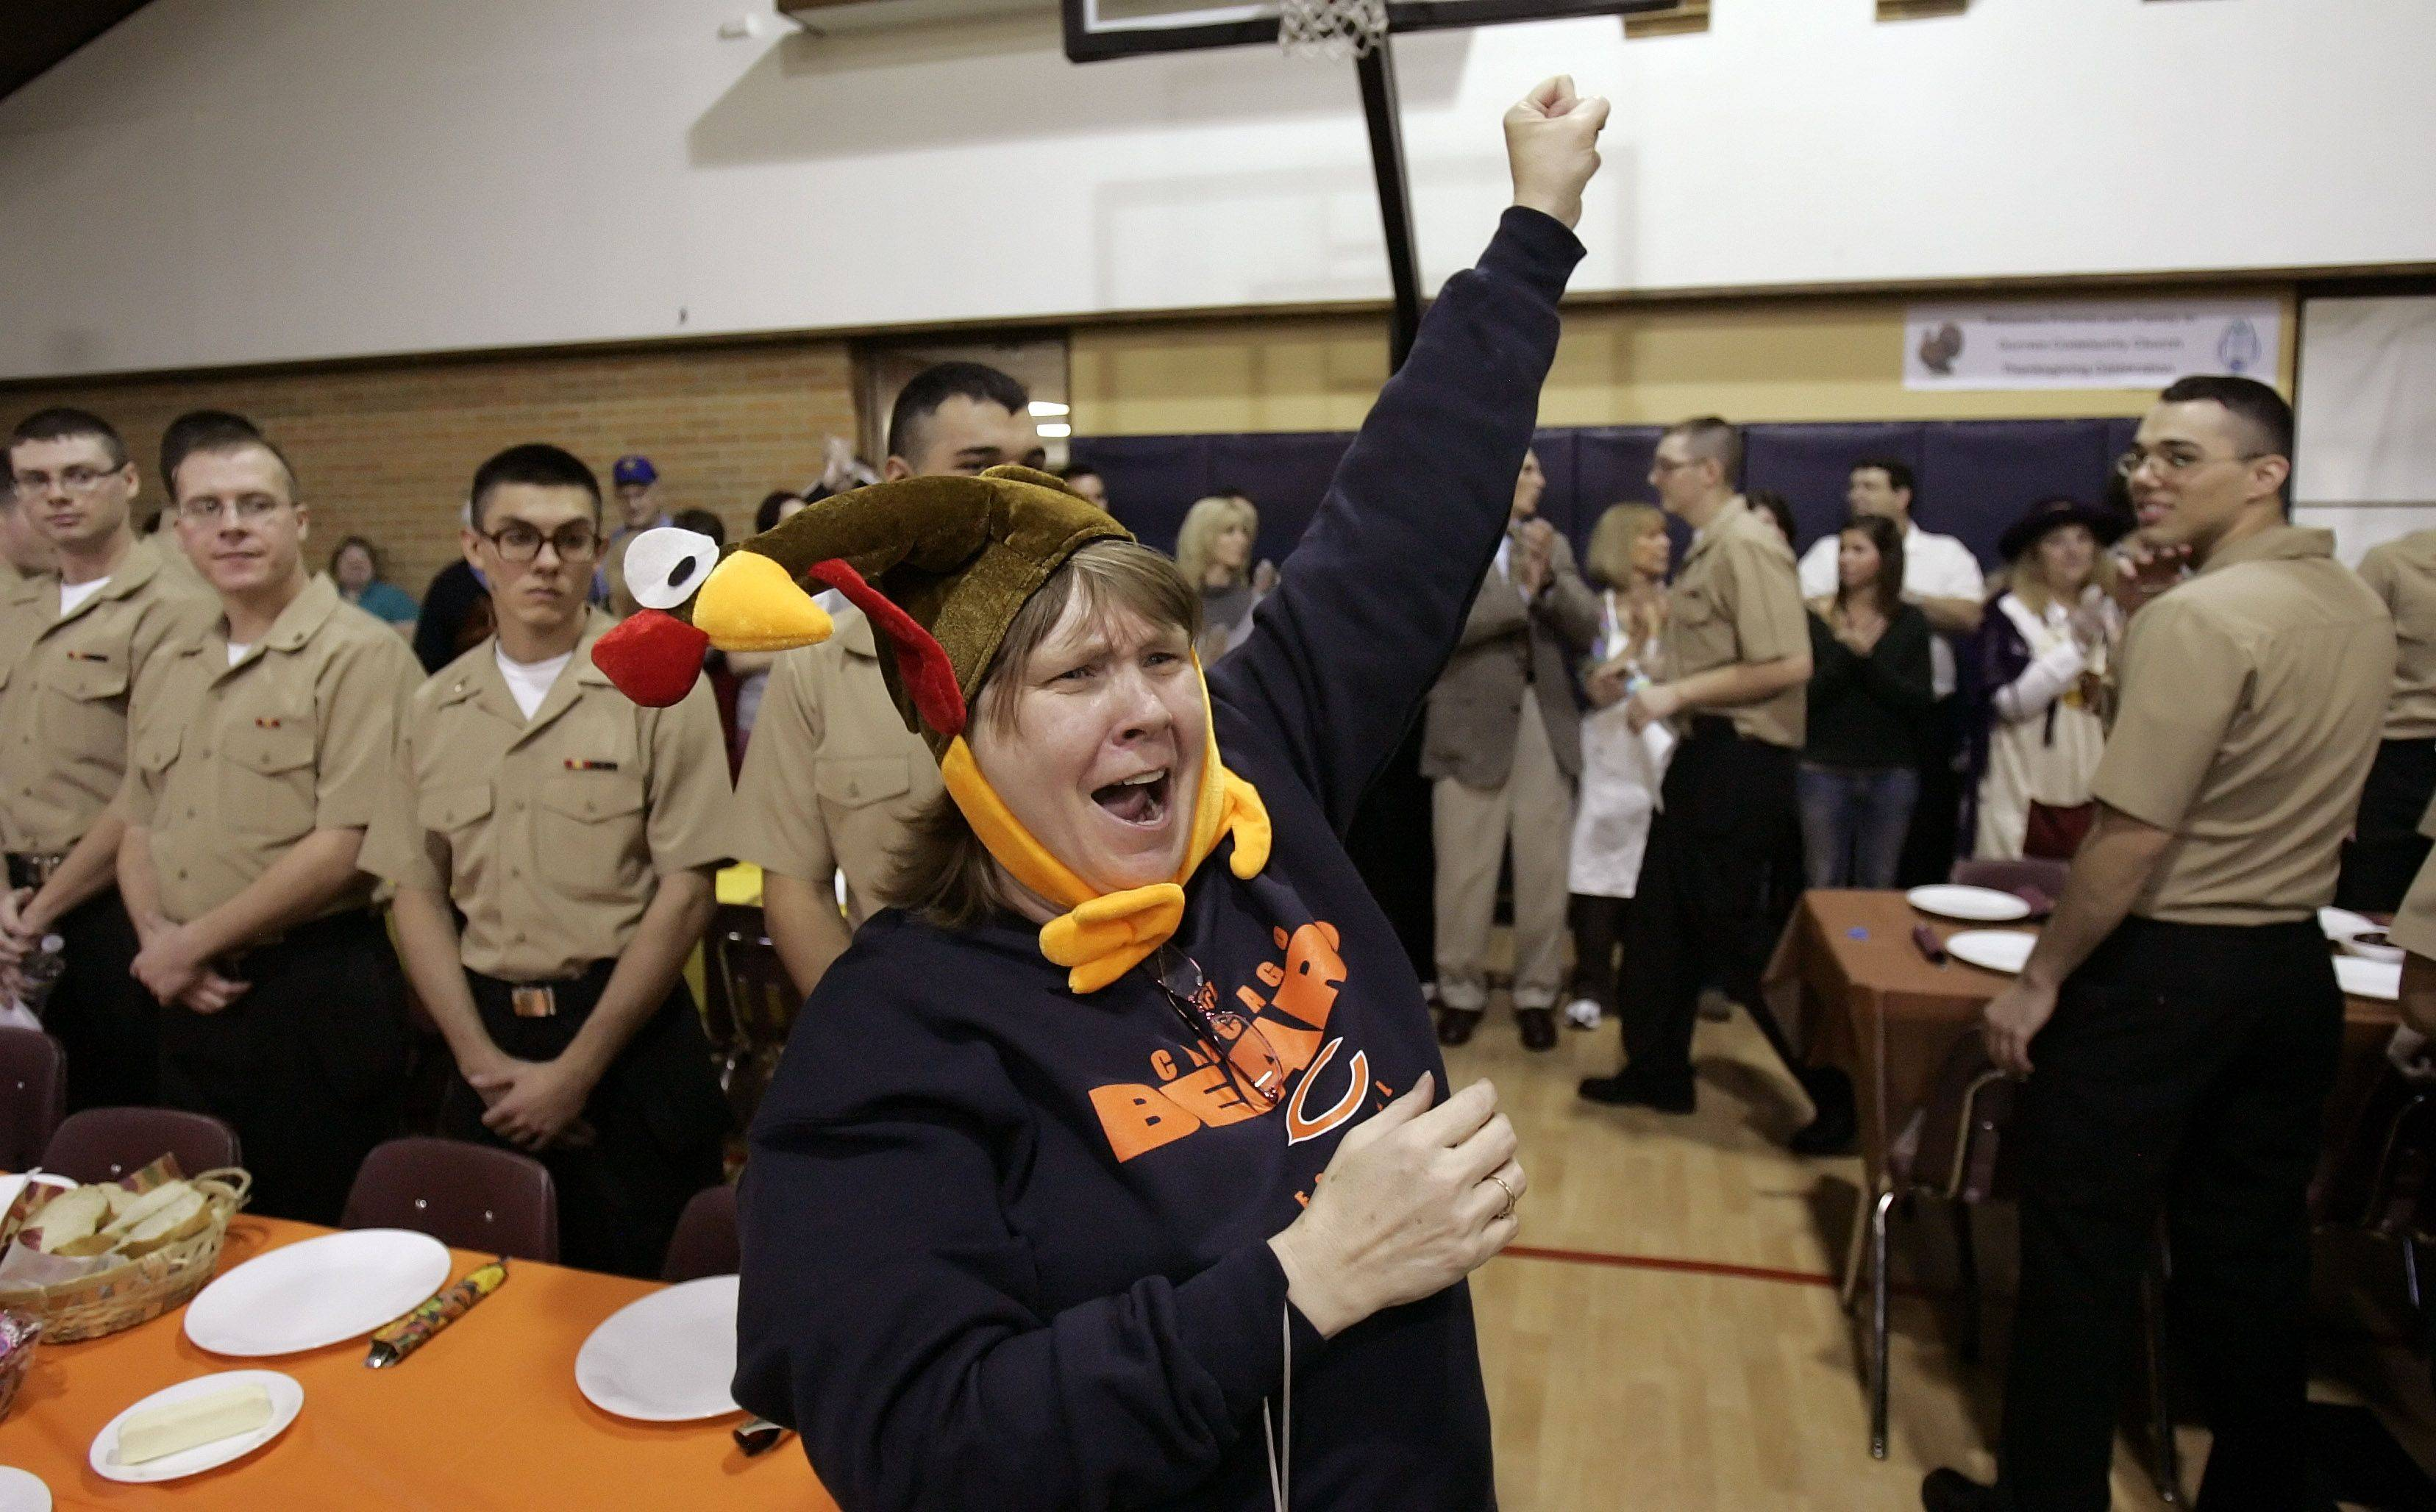 Gurnee Community Church member Debbie Krueger of Gurnee and the rest of the congregation cheer as 193 sailors make their way to the dinning room for a Thanksgiving feast with all the trimmings.